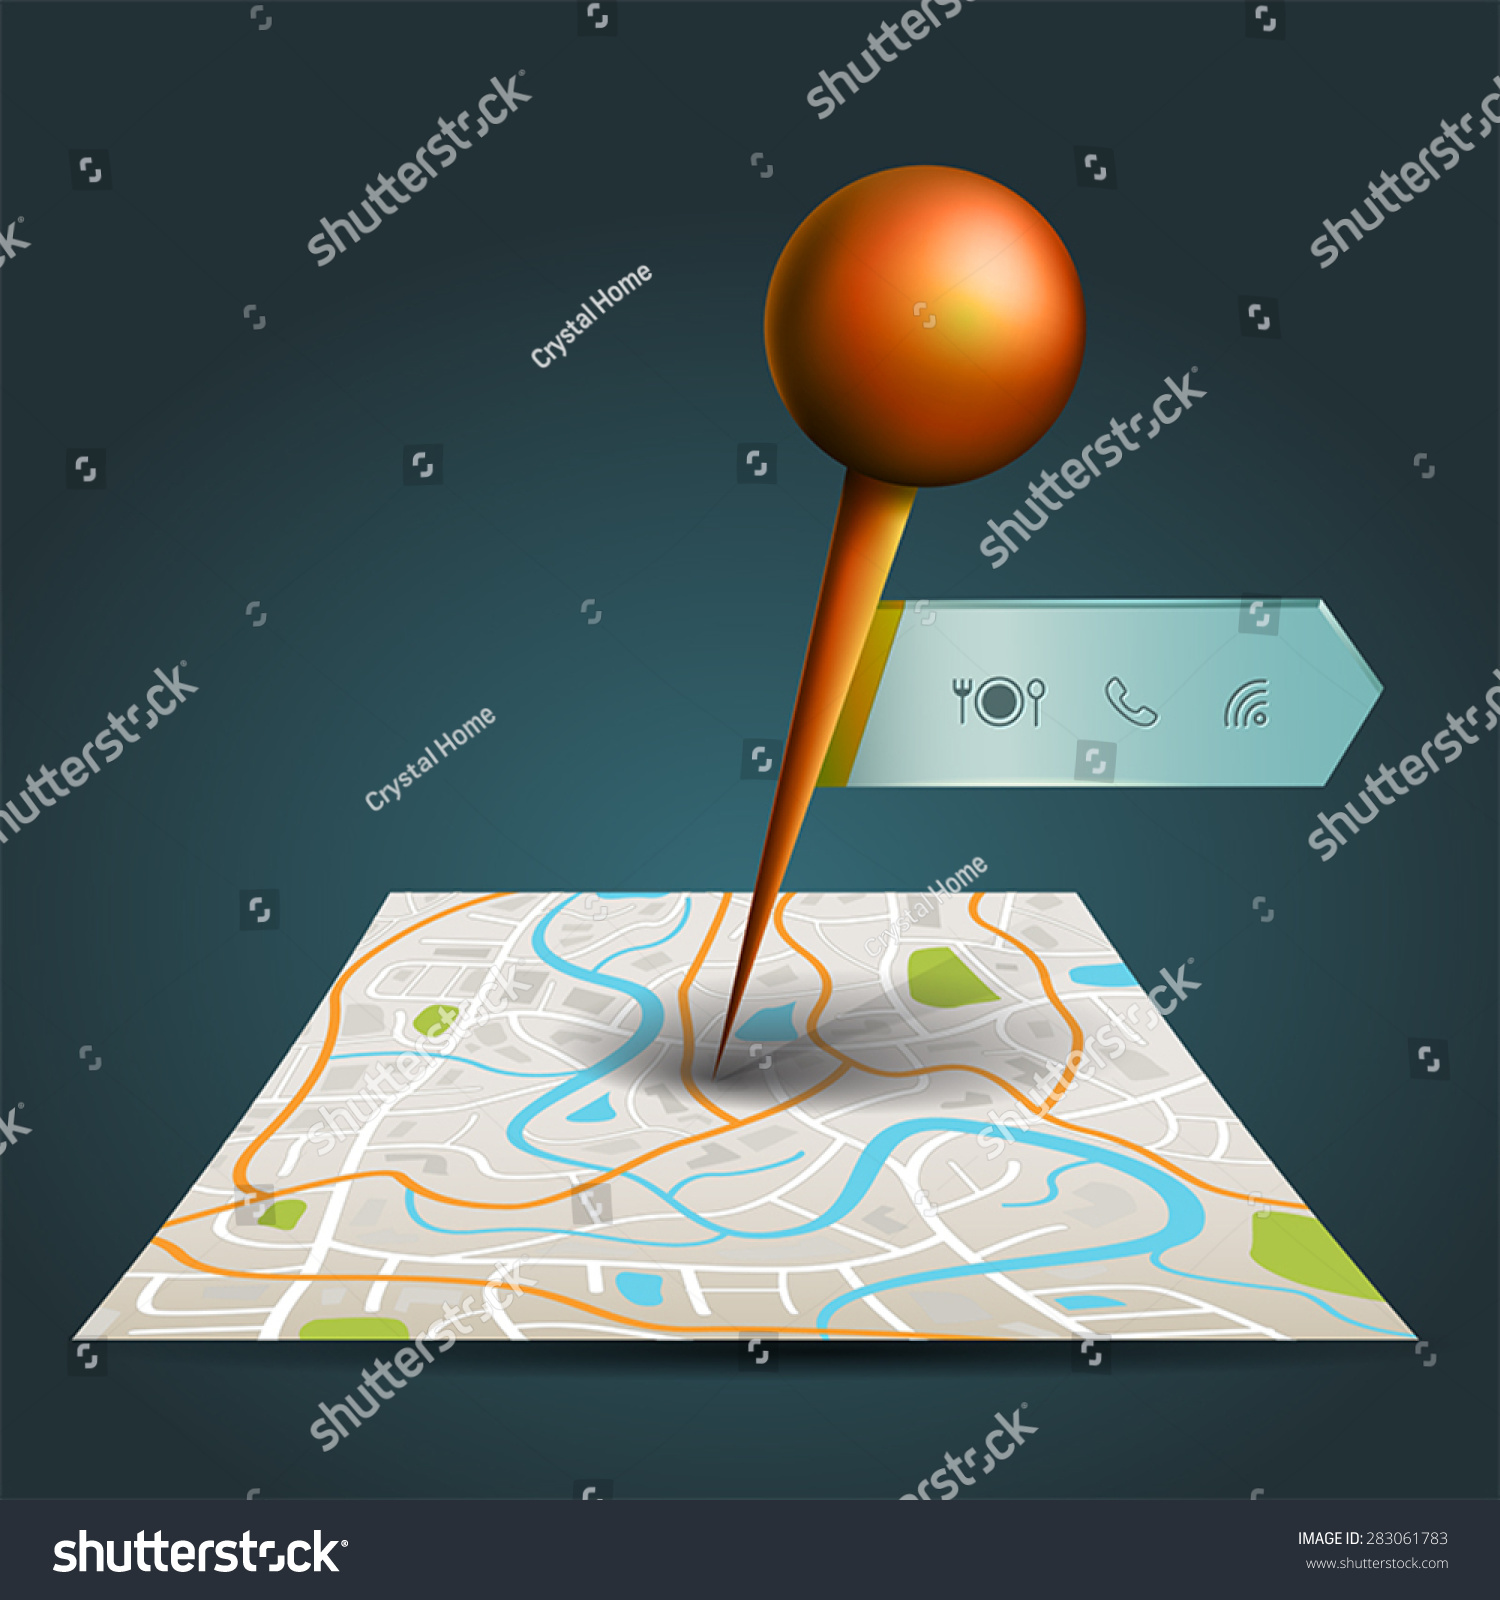 create a map with multiple locations free with Stock Vector A City Map With Digital Satellite Gps Pin Point Application With Locations And Wifi Icon Label Tag on Features further Id549643634 in addition Ecole Socrates Demosthene Montreal Quebec together with Escorted Tours furthermore Stock Vector A City Map With Digital Satellite Gps Pin Point Application With Locations And Wifi Icon Label Tag.